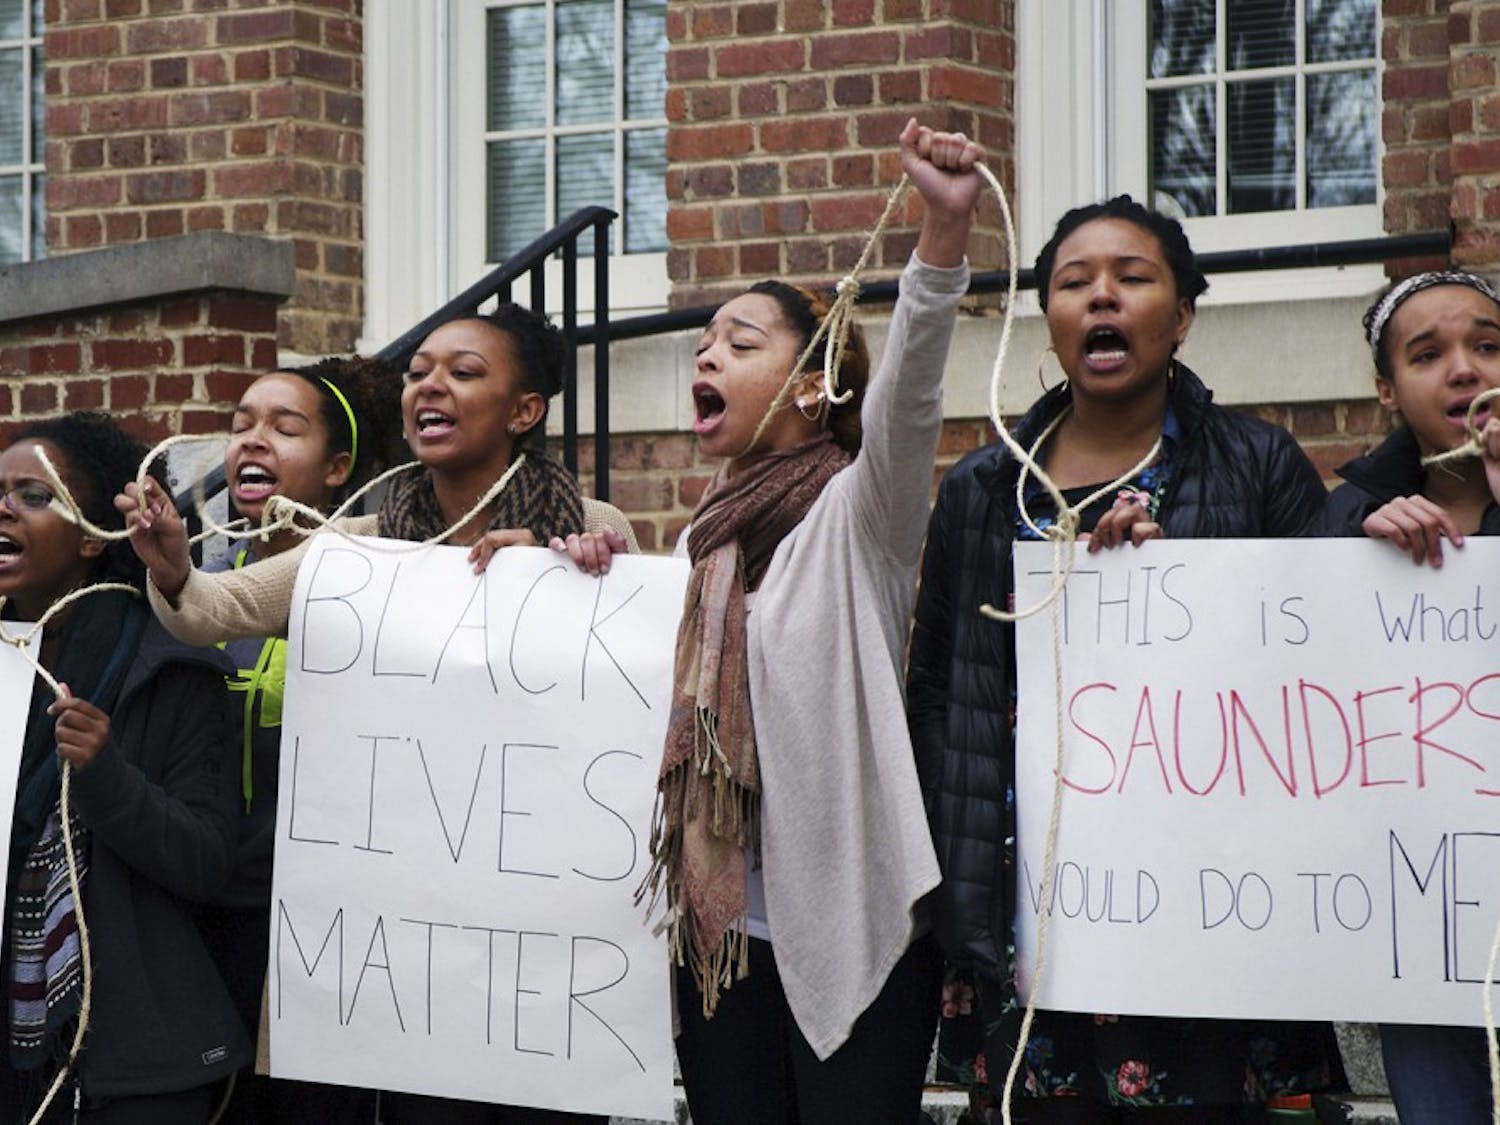 Students gather outside of Saunders Hall on Monday February 2, 2015 from 11 a.m. to 2 p.m. demanding the name be changed to Hurston Hall, honoring the late Zora Neale Hurston.